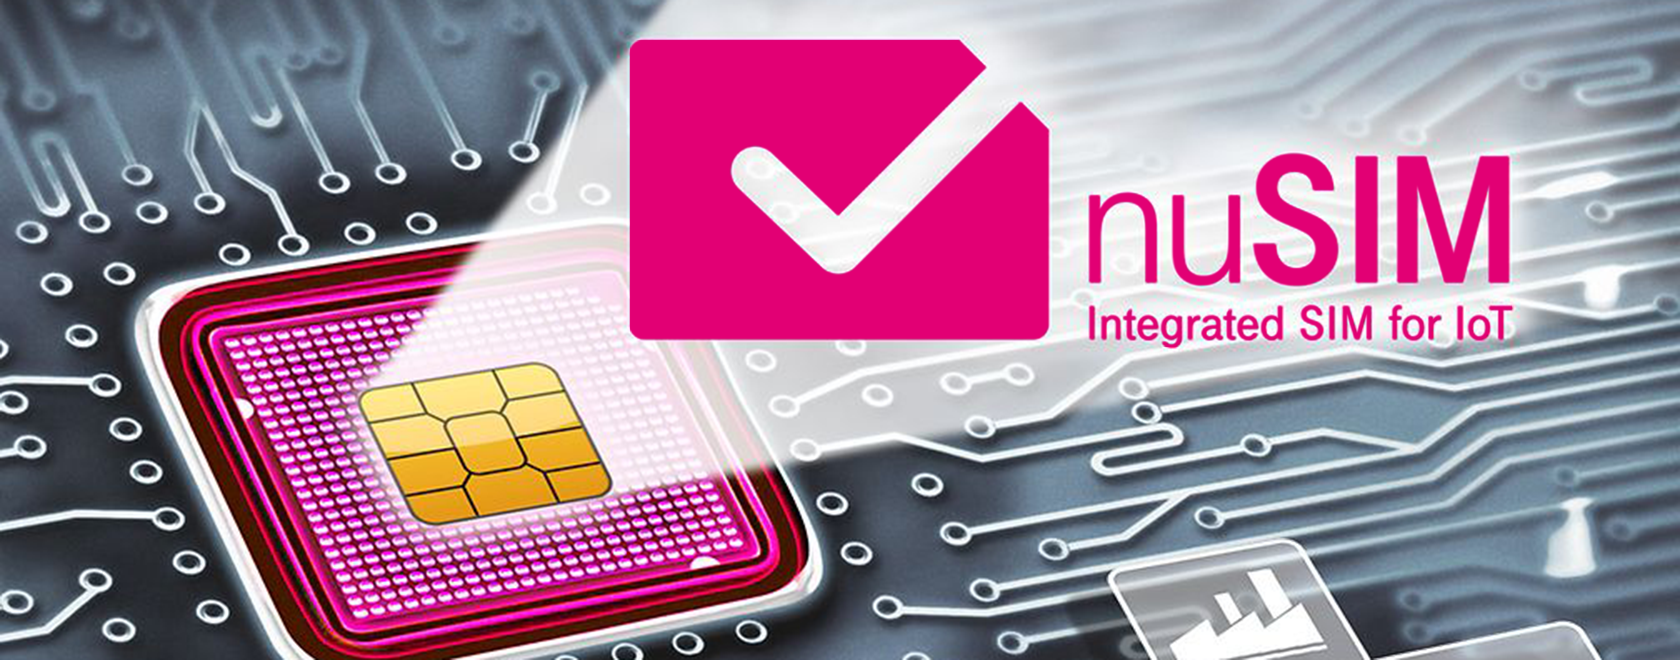 COMPRION partners with Deutsche Telekom to create a test system for the nuSIM initiative